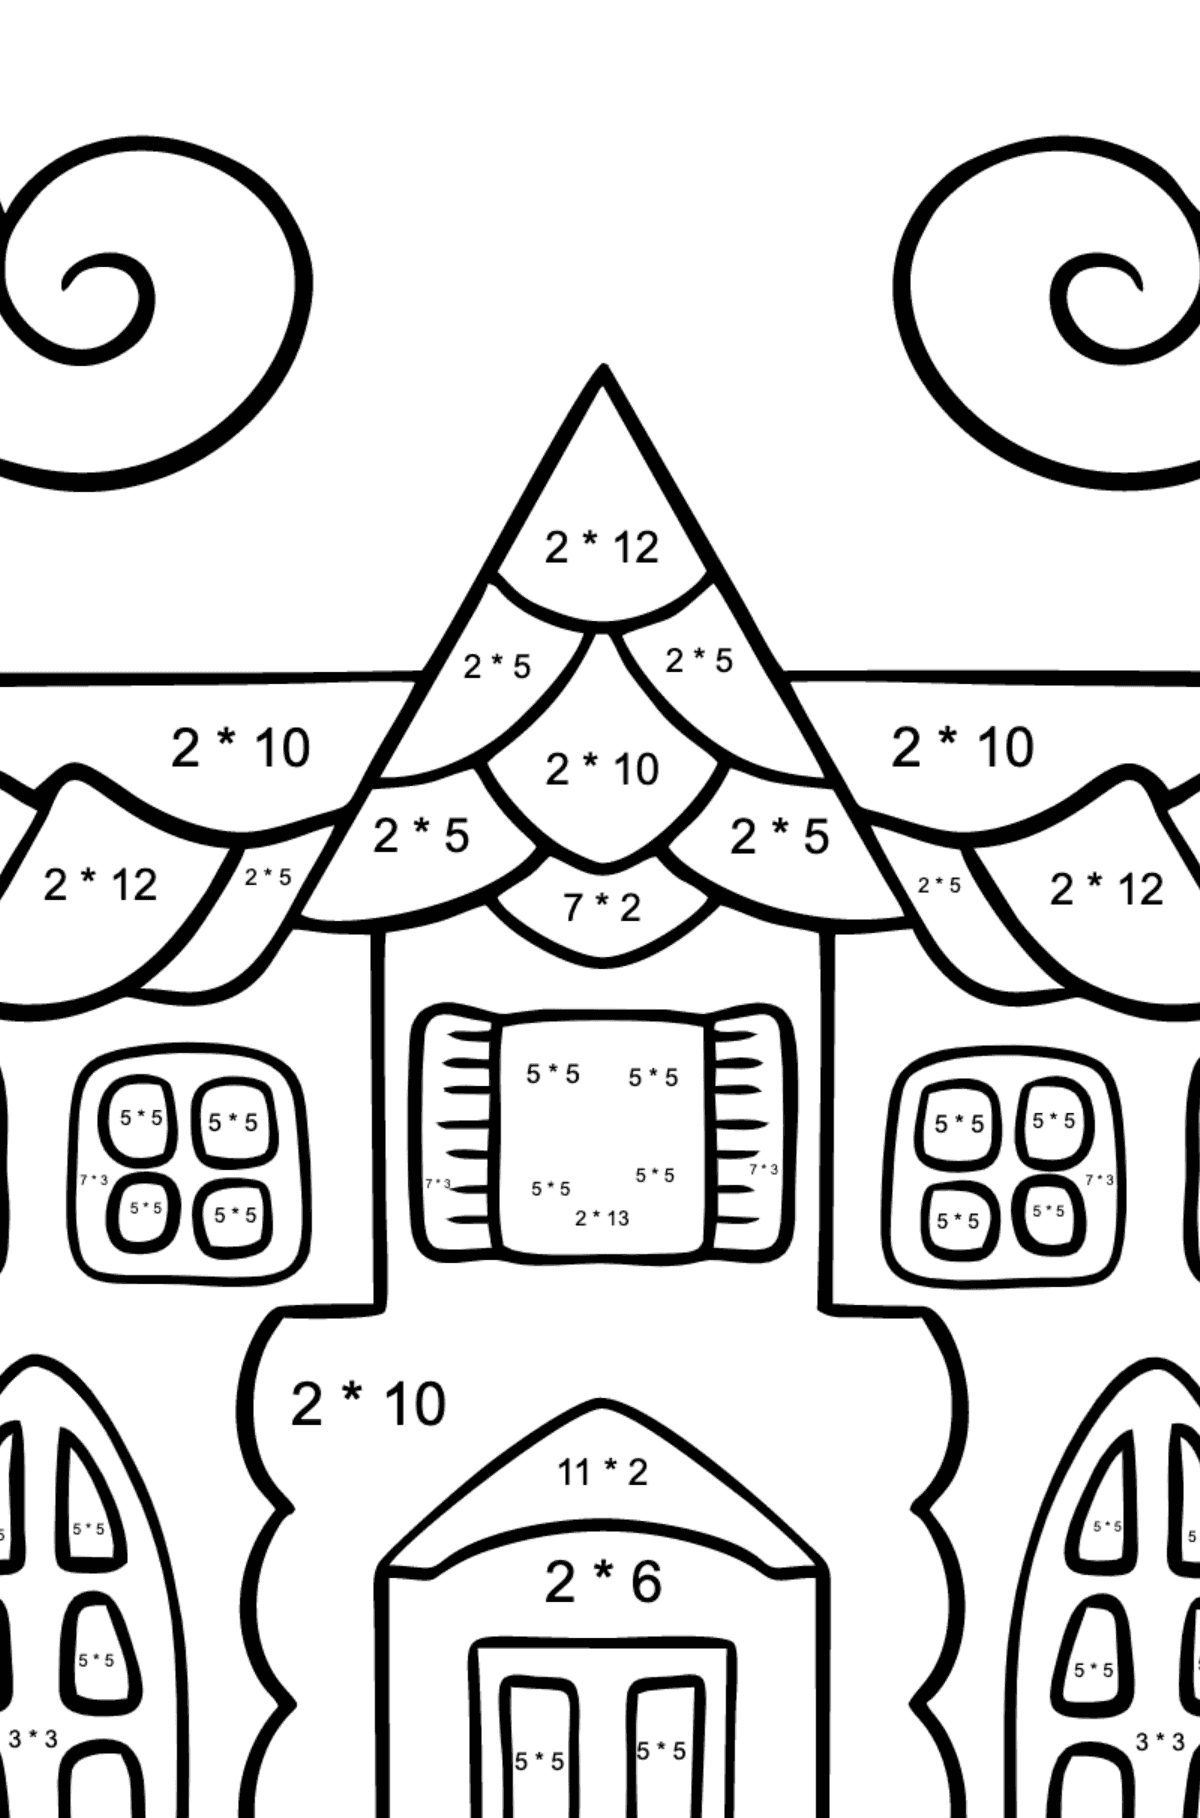 Complex Coloring Page - A House in an Enchanted Kingdom - Math Coloring - Multiplication for Kids